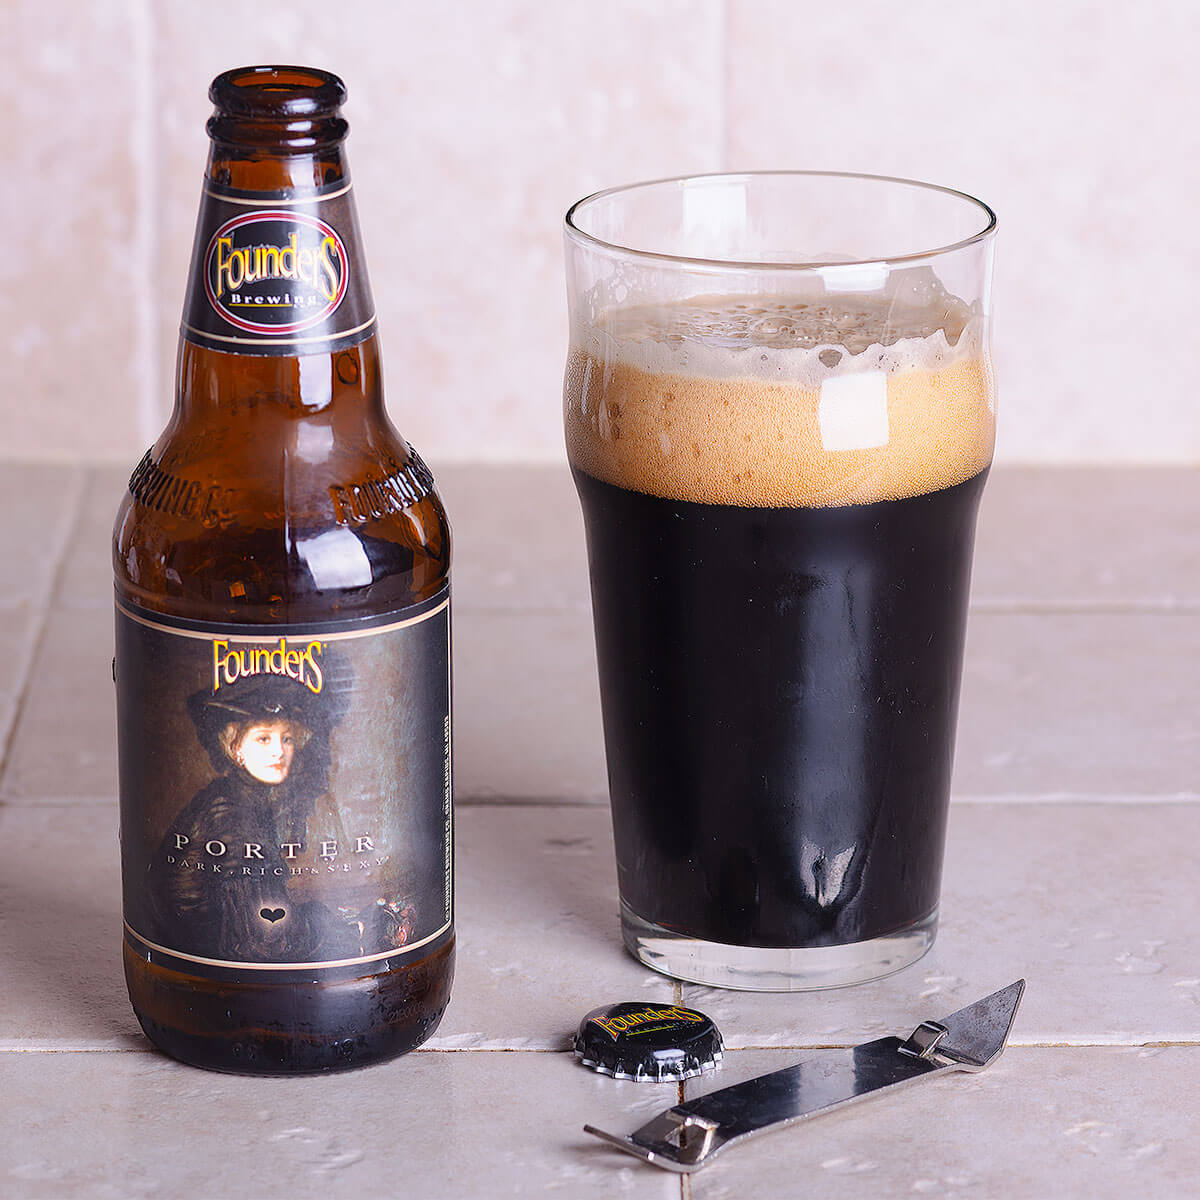 Founders Porter is an American Porter by Founders Brewing Co. whose roast malt and hops are balanced by sweet chocolate and caramel.